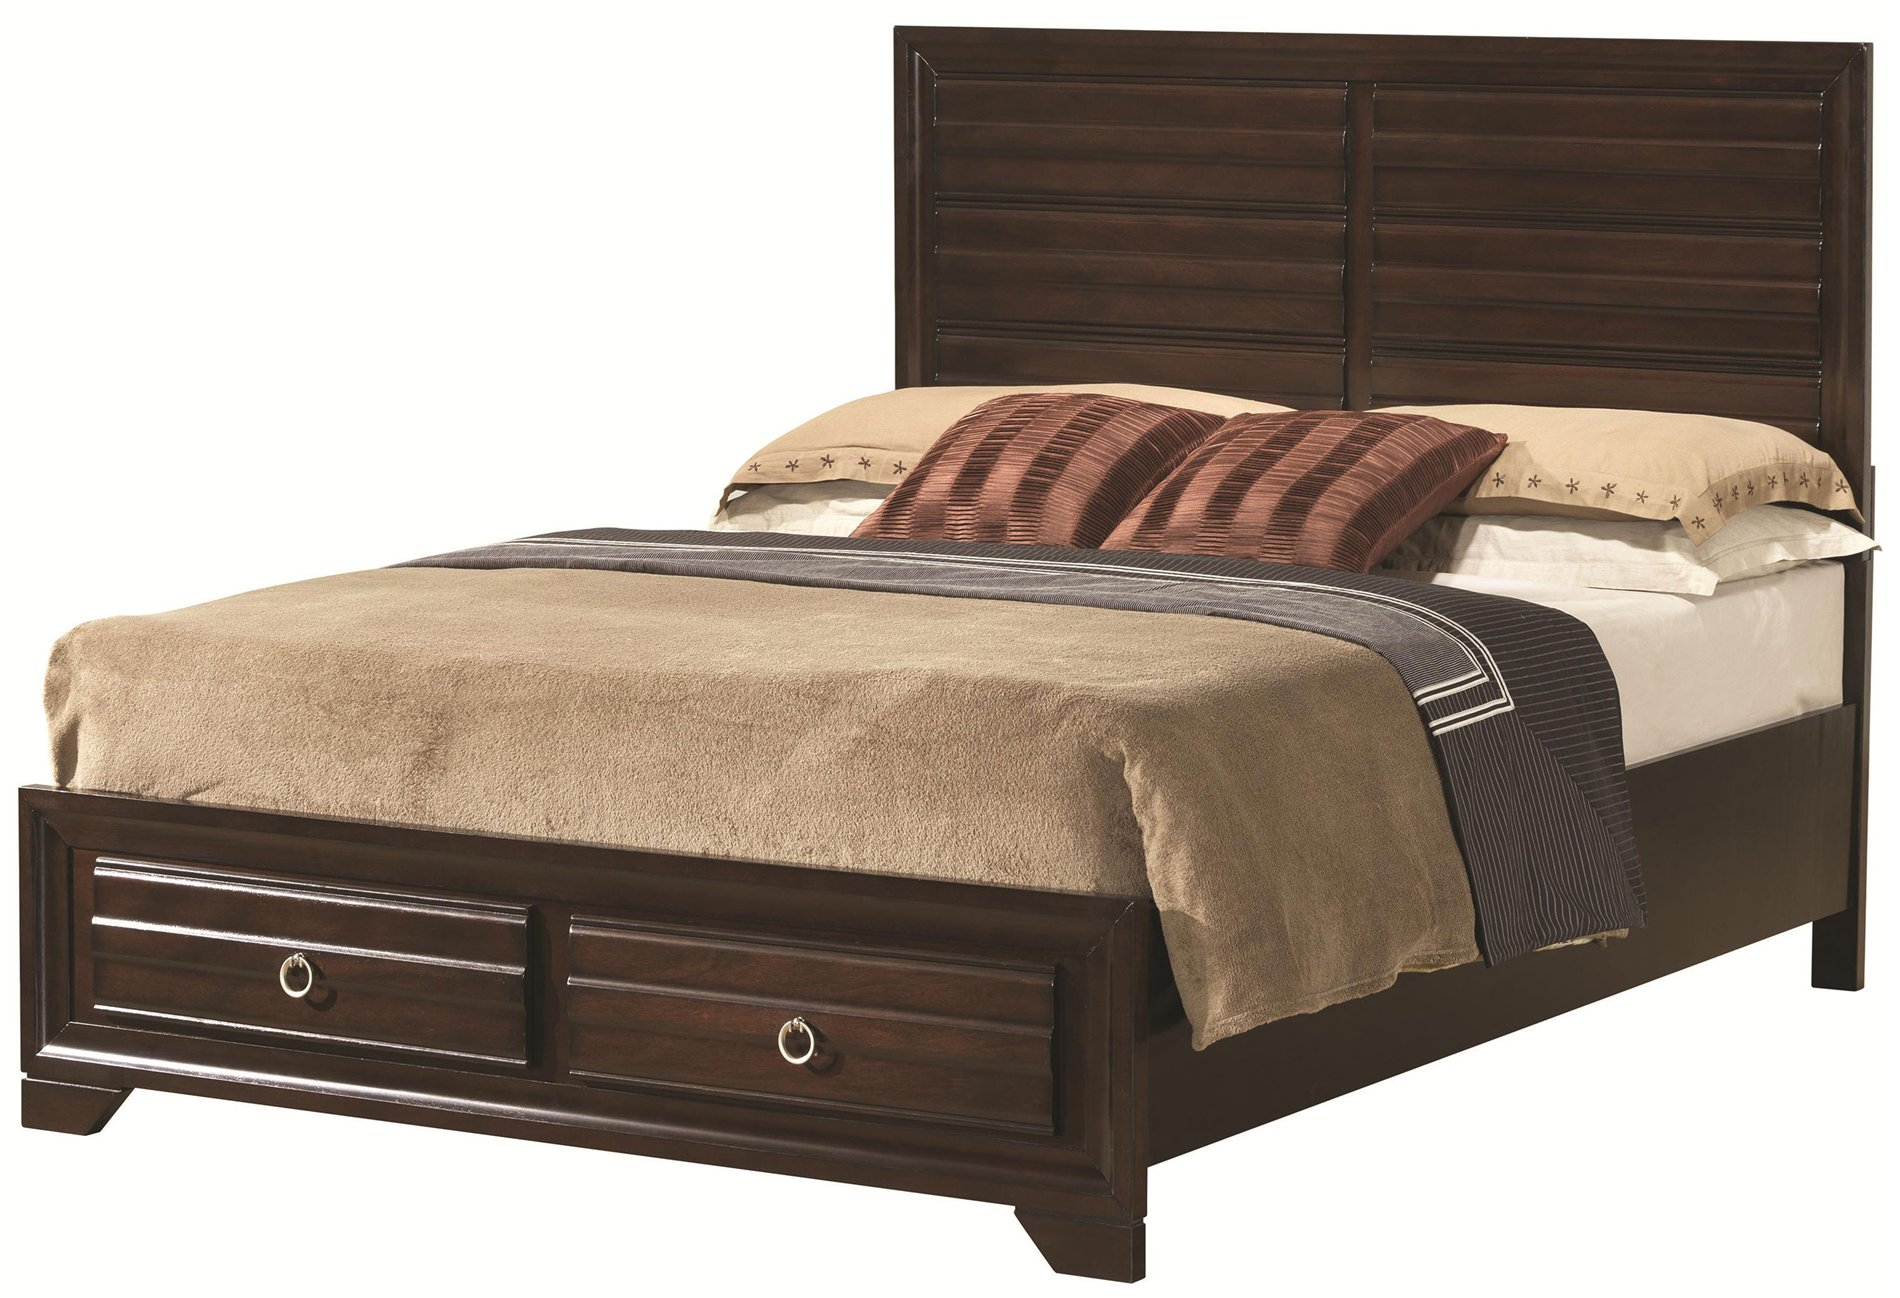 Coaster home 203471kw bryce 20347 california king bed with for California king headboard